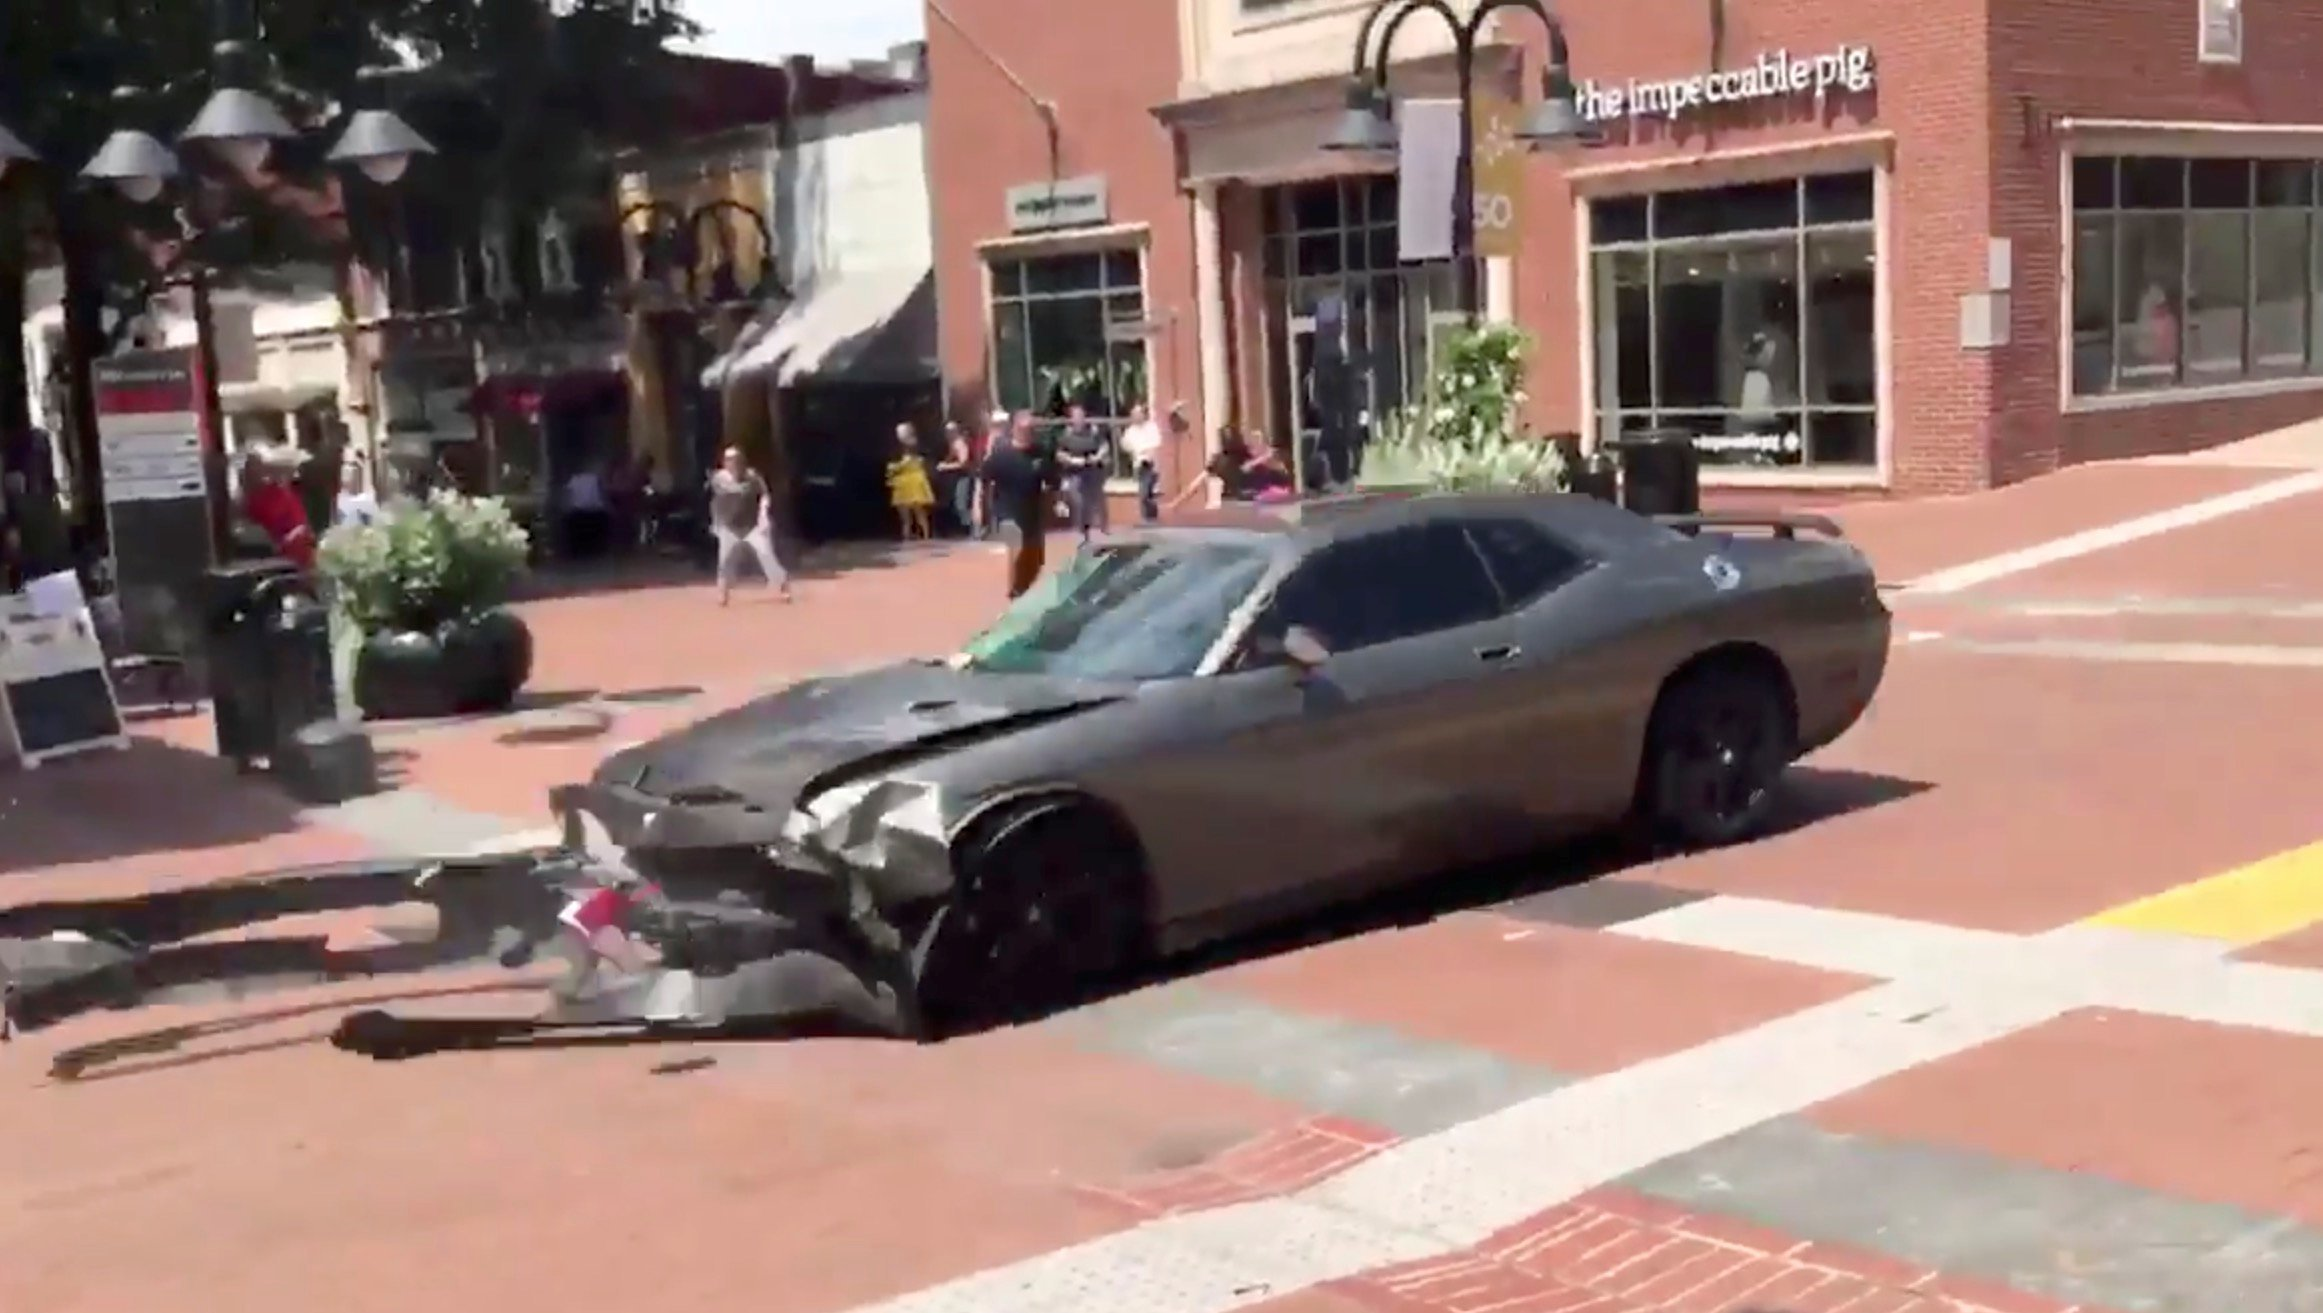 A vehicle is seen reversing after plowing into the crowd gathered on a street in Charlottesville, Virginia, U.S., after police broke up a clash between white nationalists and counter-protesters